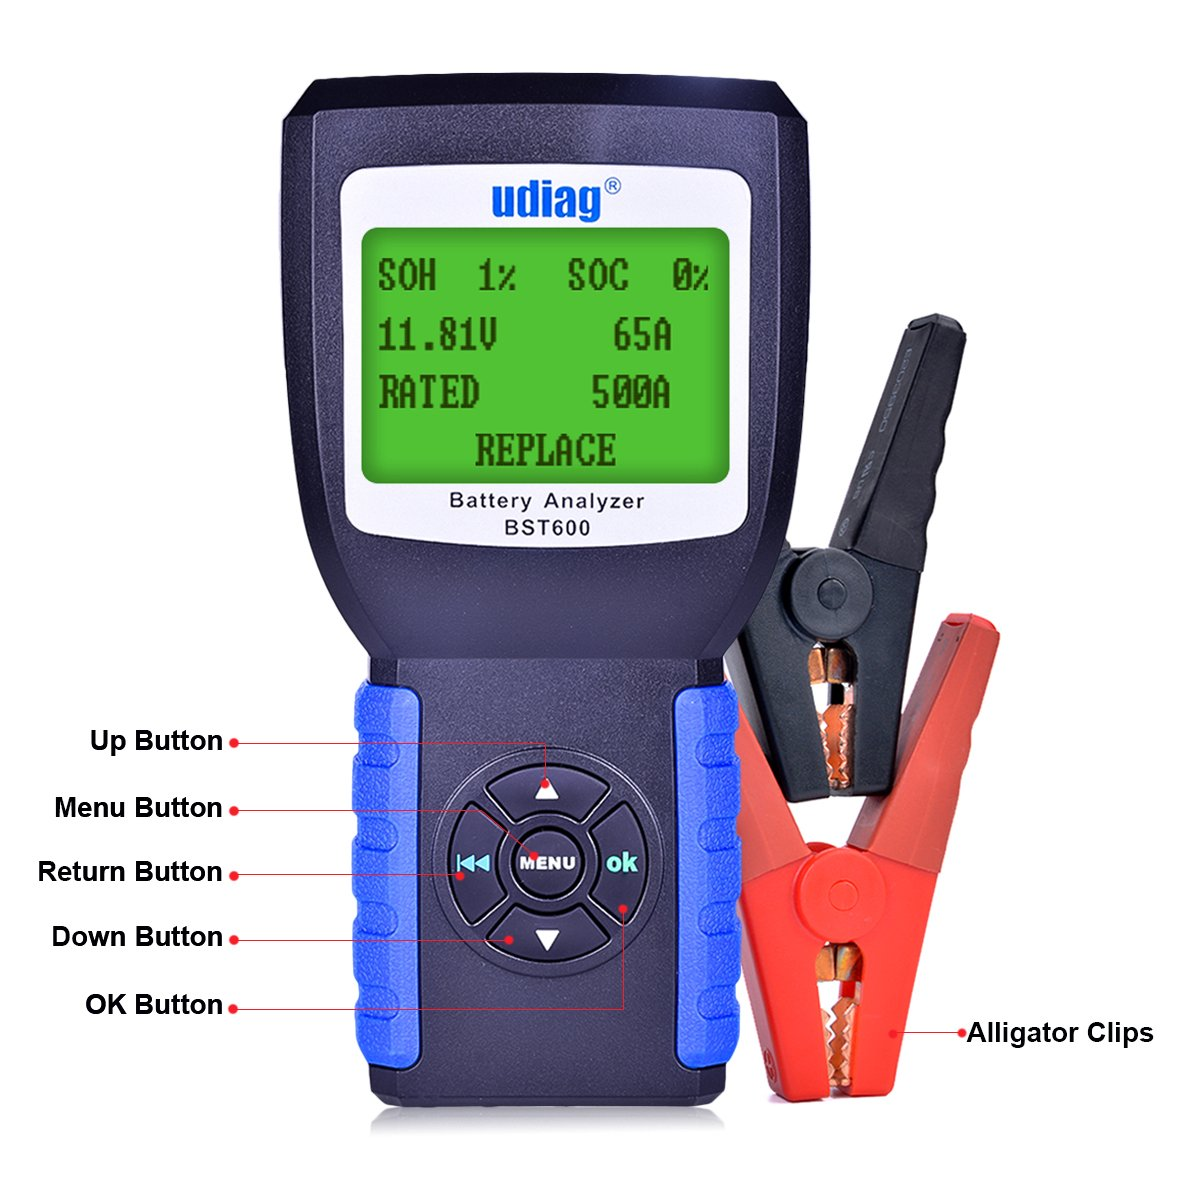 Car Battery Tester, Udiag BST600 Car Battery Load Tester for 12V 100-2000CCA 30-200AH Auto Regular Flooded AGM Flat Plate Gel Batteries Starting and Charging System Blue by udiag (Image #2)